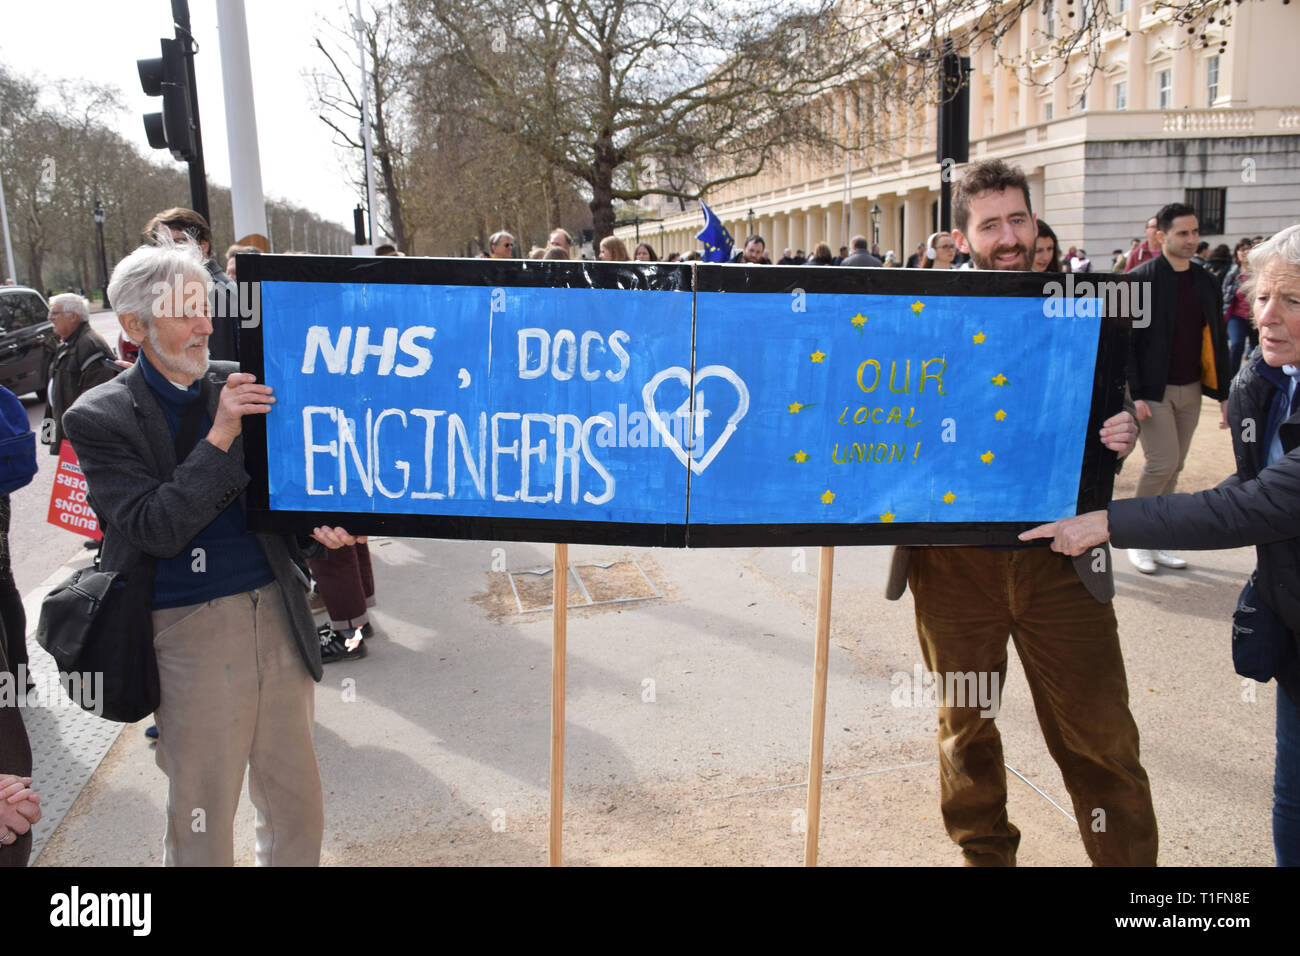 Put it to the People demonstration in central London against Brexit and an appeal for a Peoples Vote on a final Deal. London UK 23 March 2019 - Stock Image